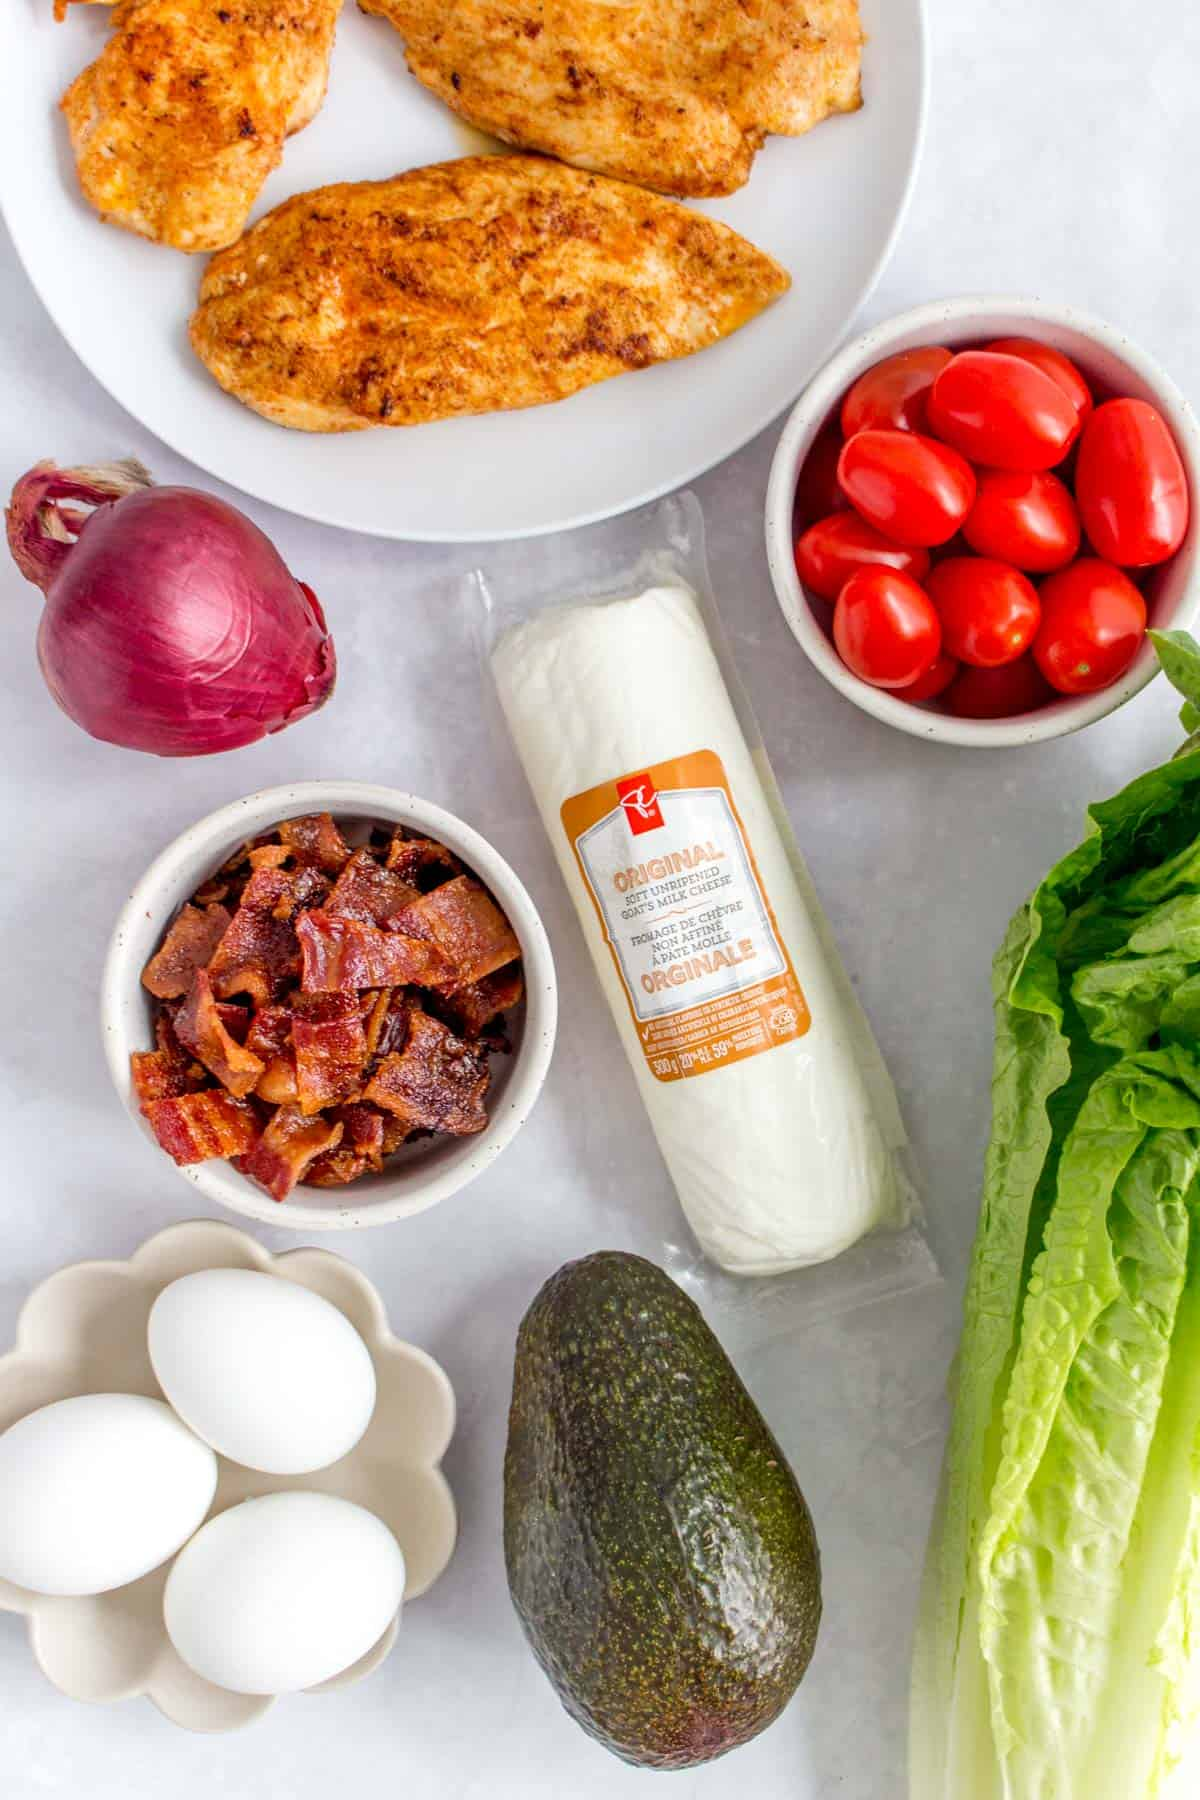 Ingredients for a meal prepped chicken cobb salad.